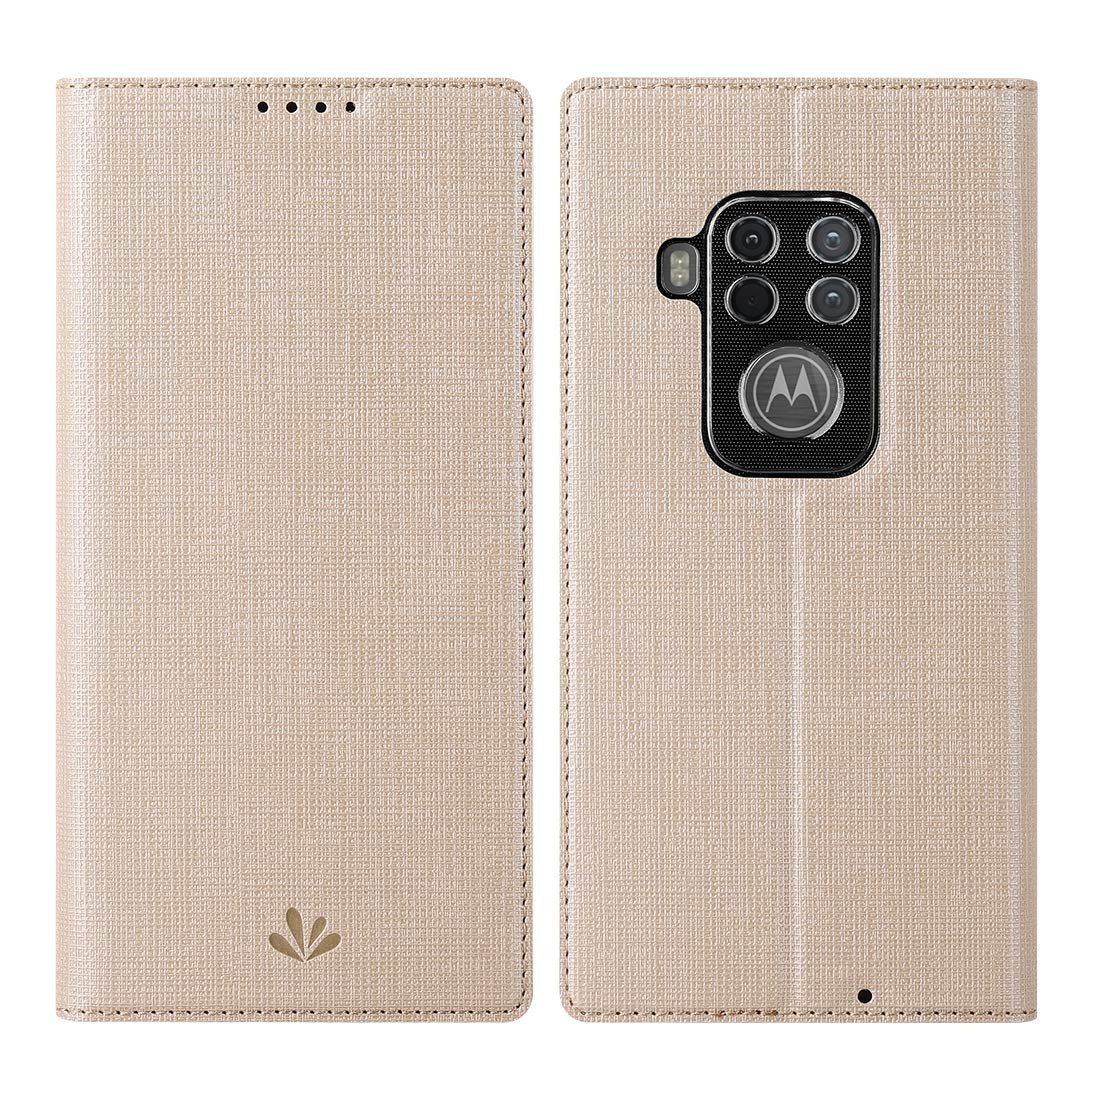 Funda Flip Cover Para Motorola One Zoom, Dorada